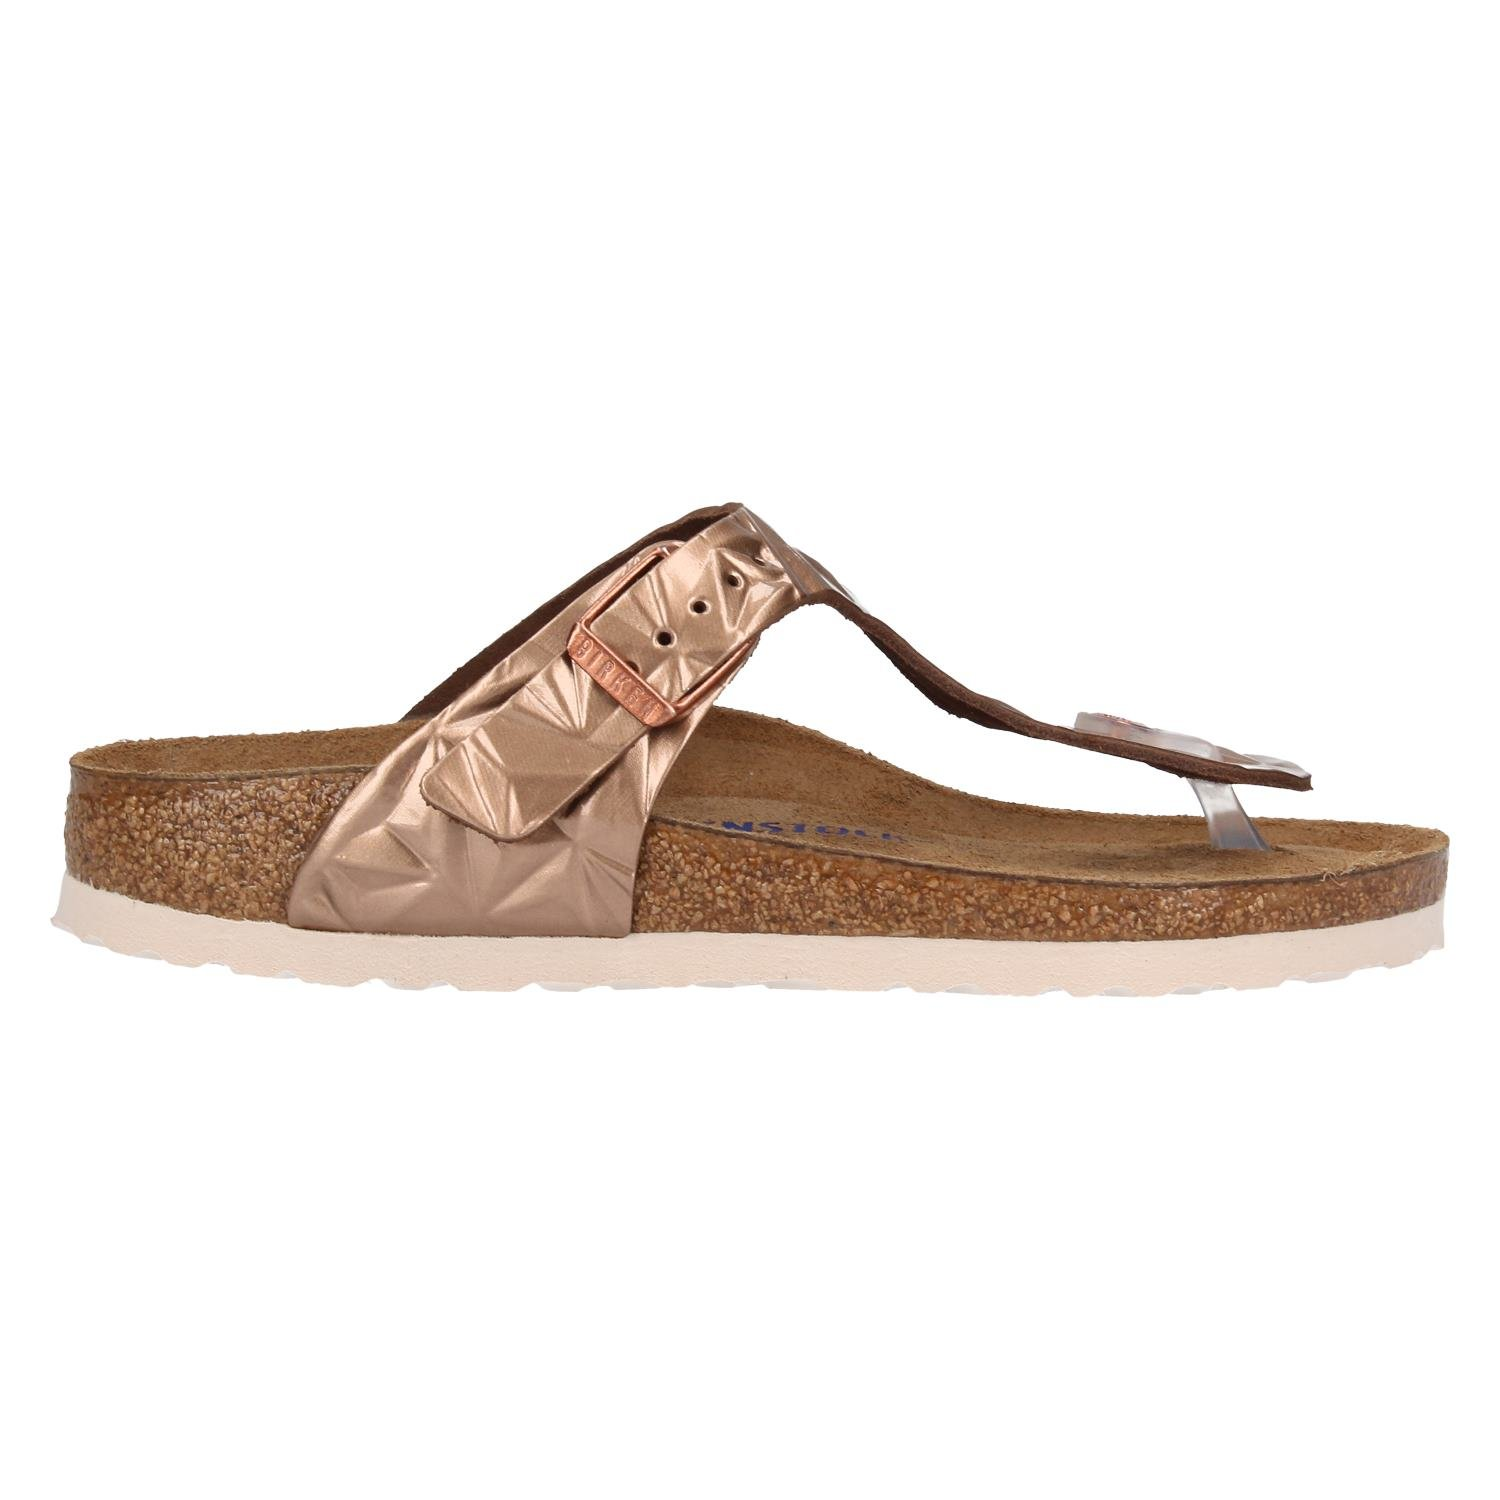 BIRKENSTOCK Gizeh Thong Sandale 1008472 Spectral 38 Gold qwil60